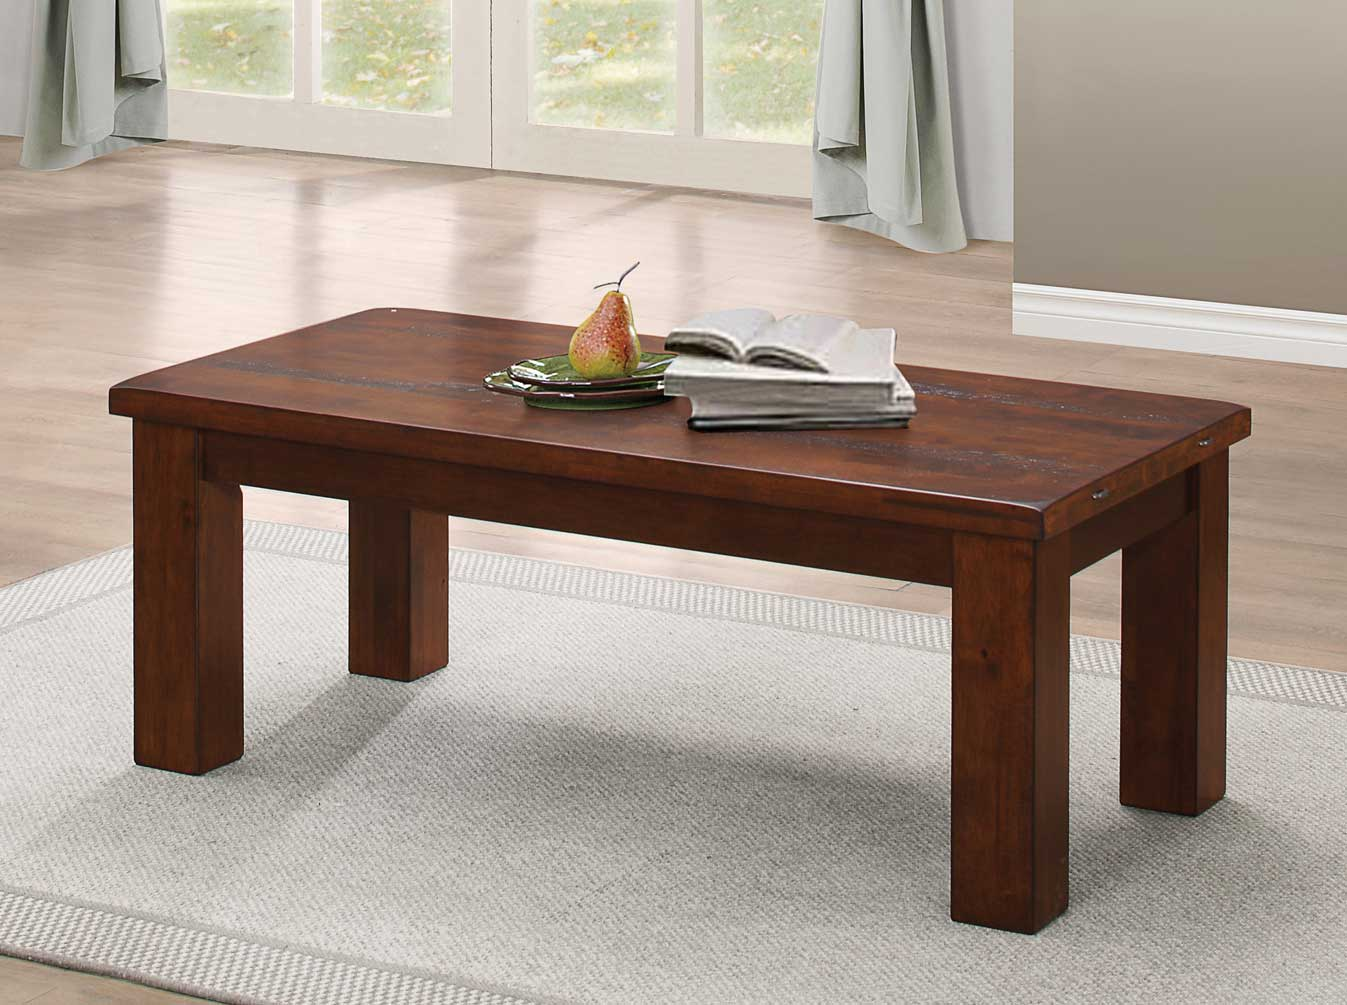 Homelegance Santos Cocktail Table - Natural Brown